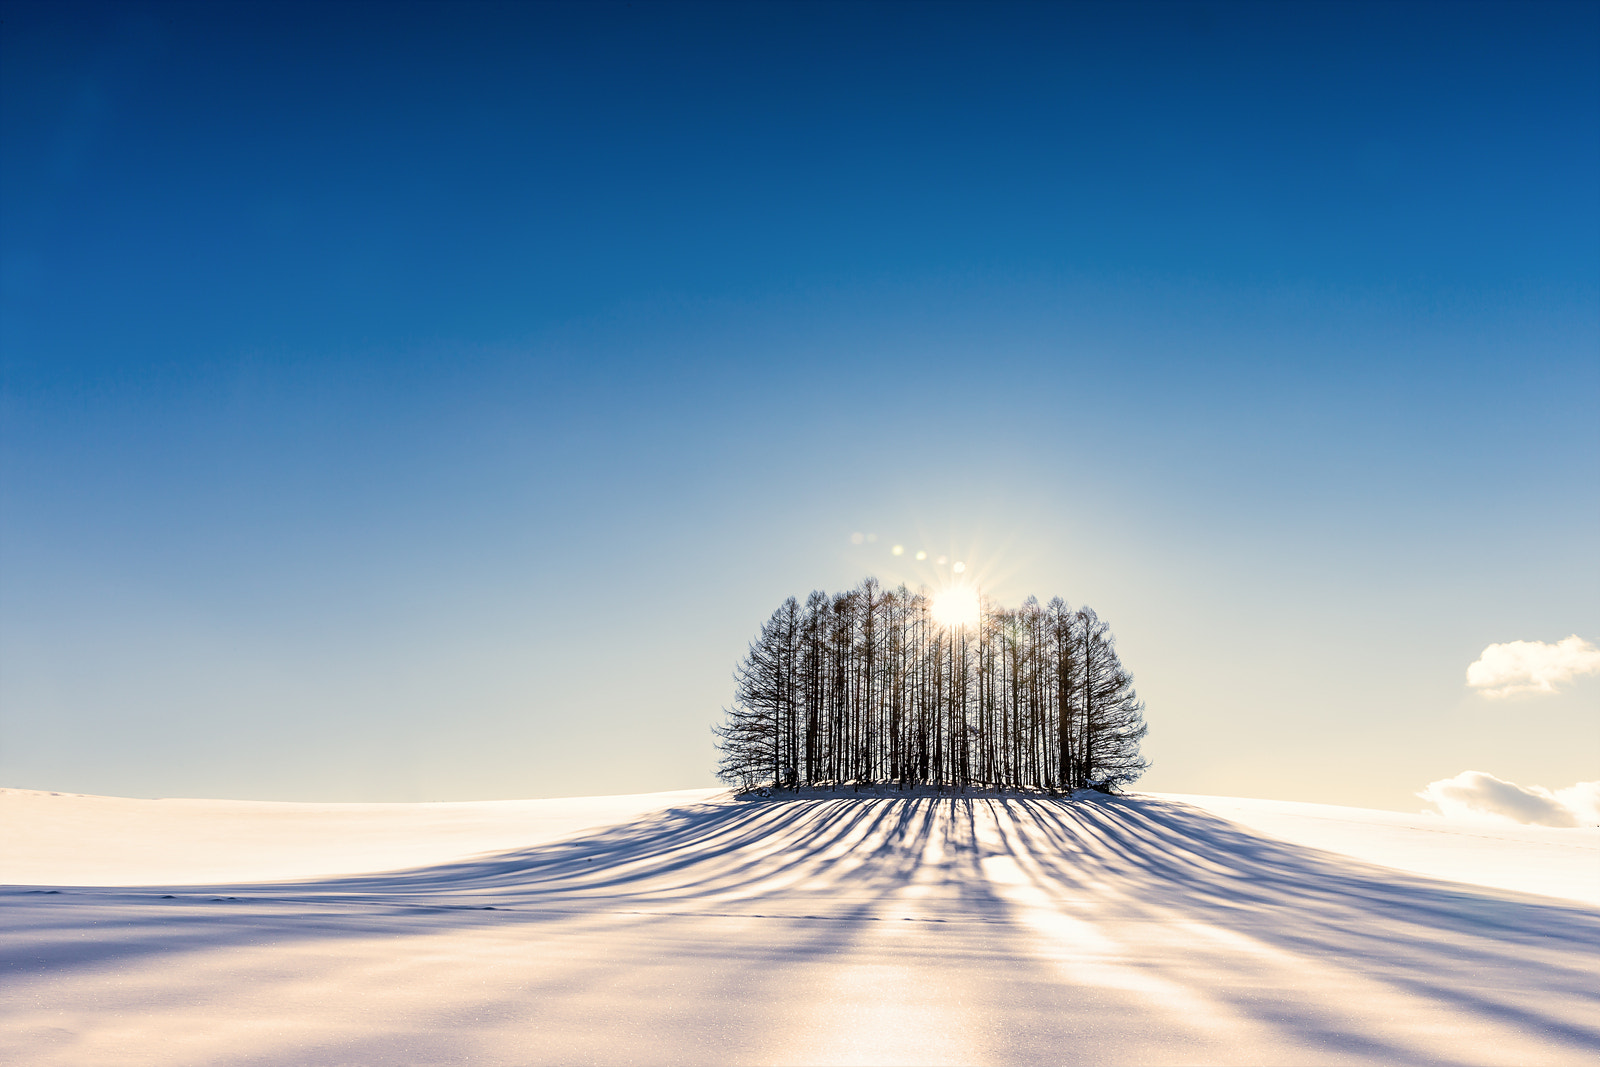 Photograph Tree by Venti Lee on 500px